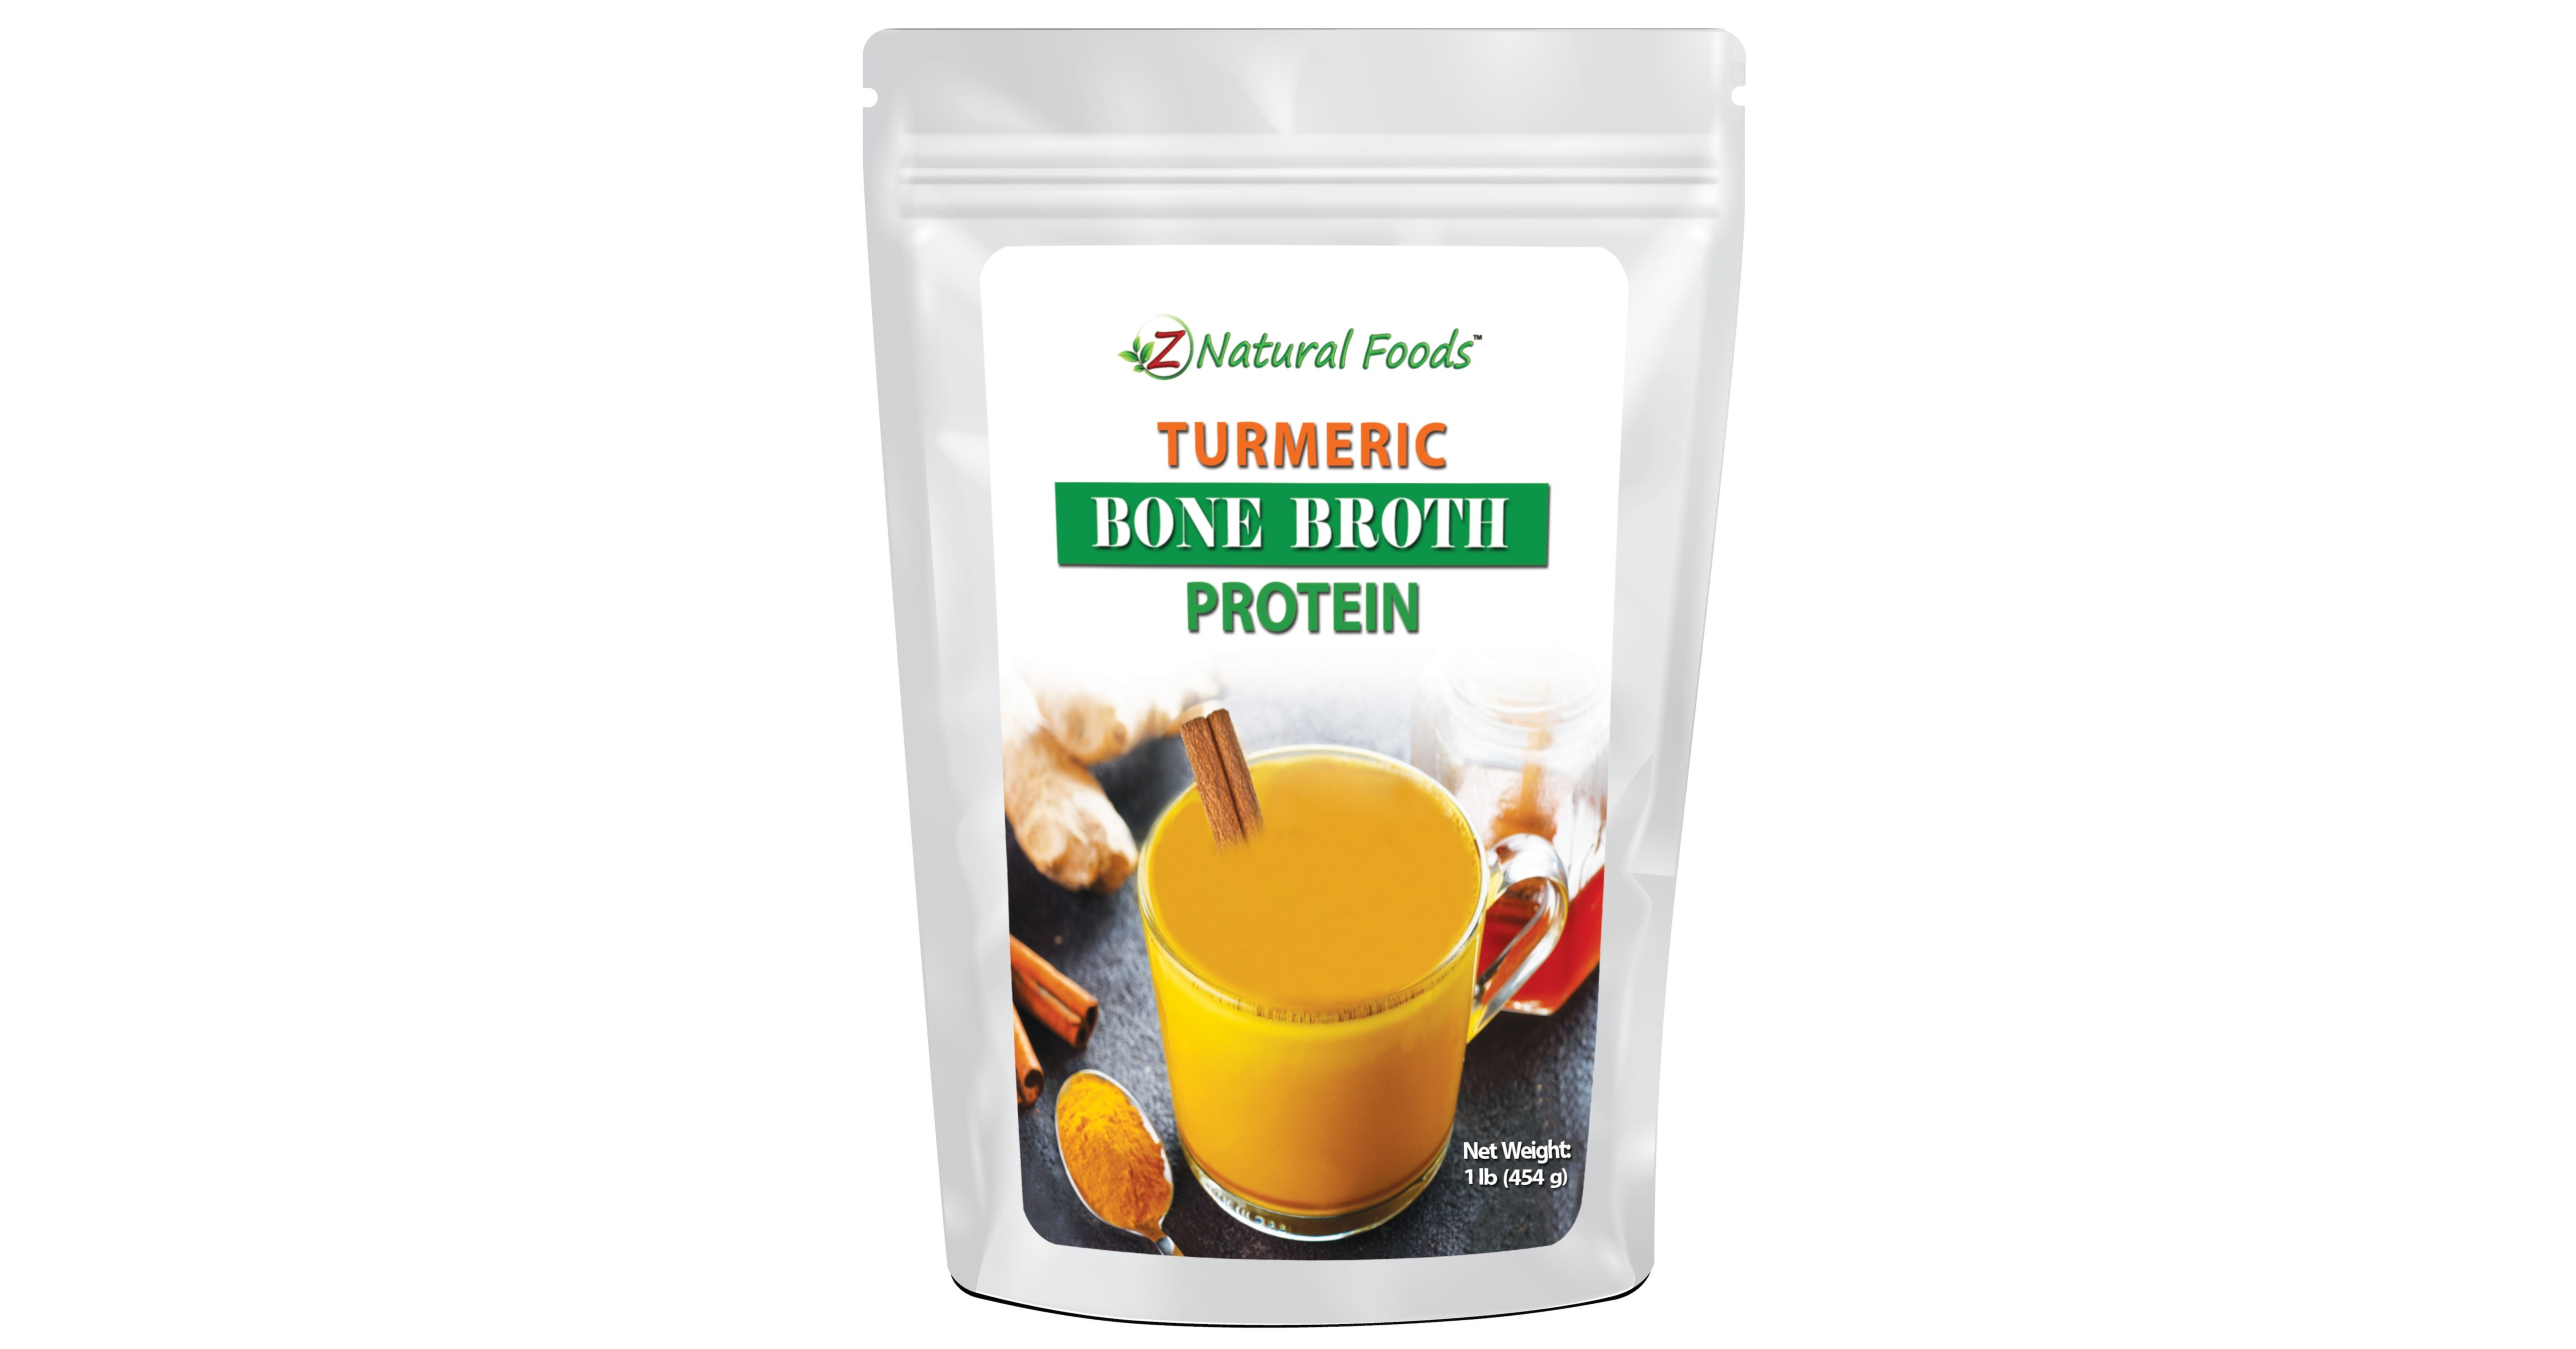 Z Natural Foods Releases New Turmeric Bone Broth Protein